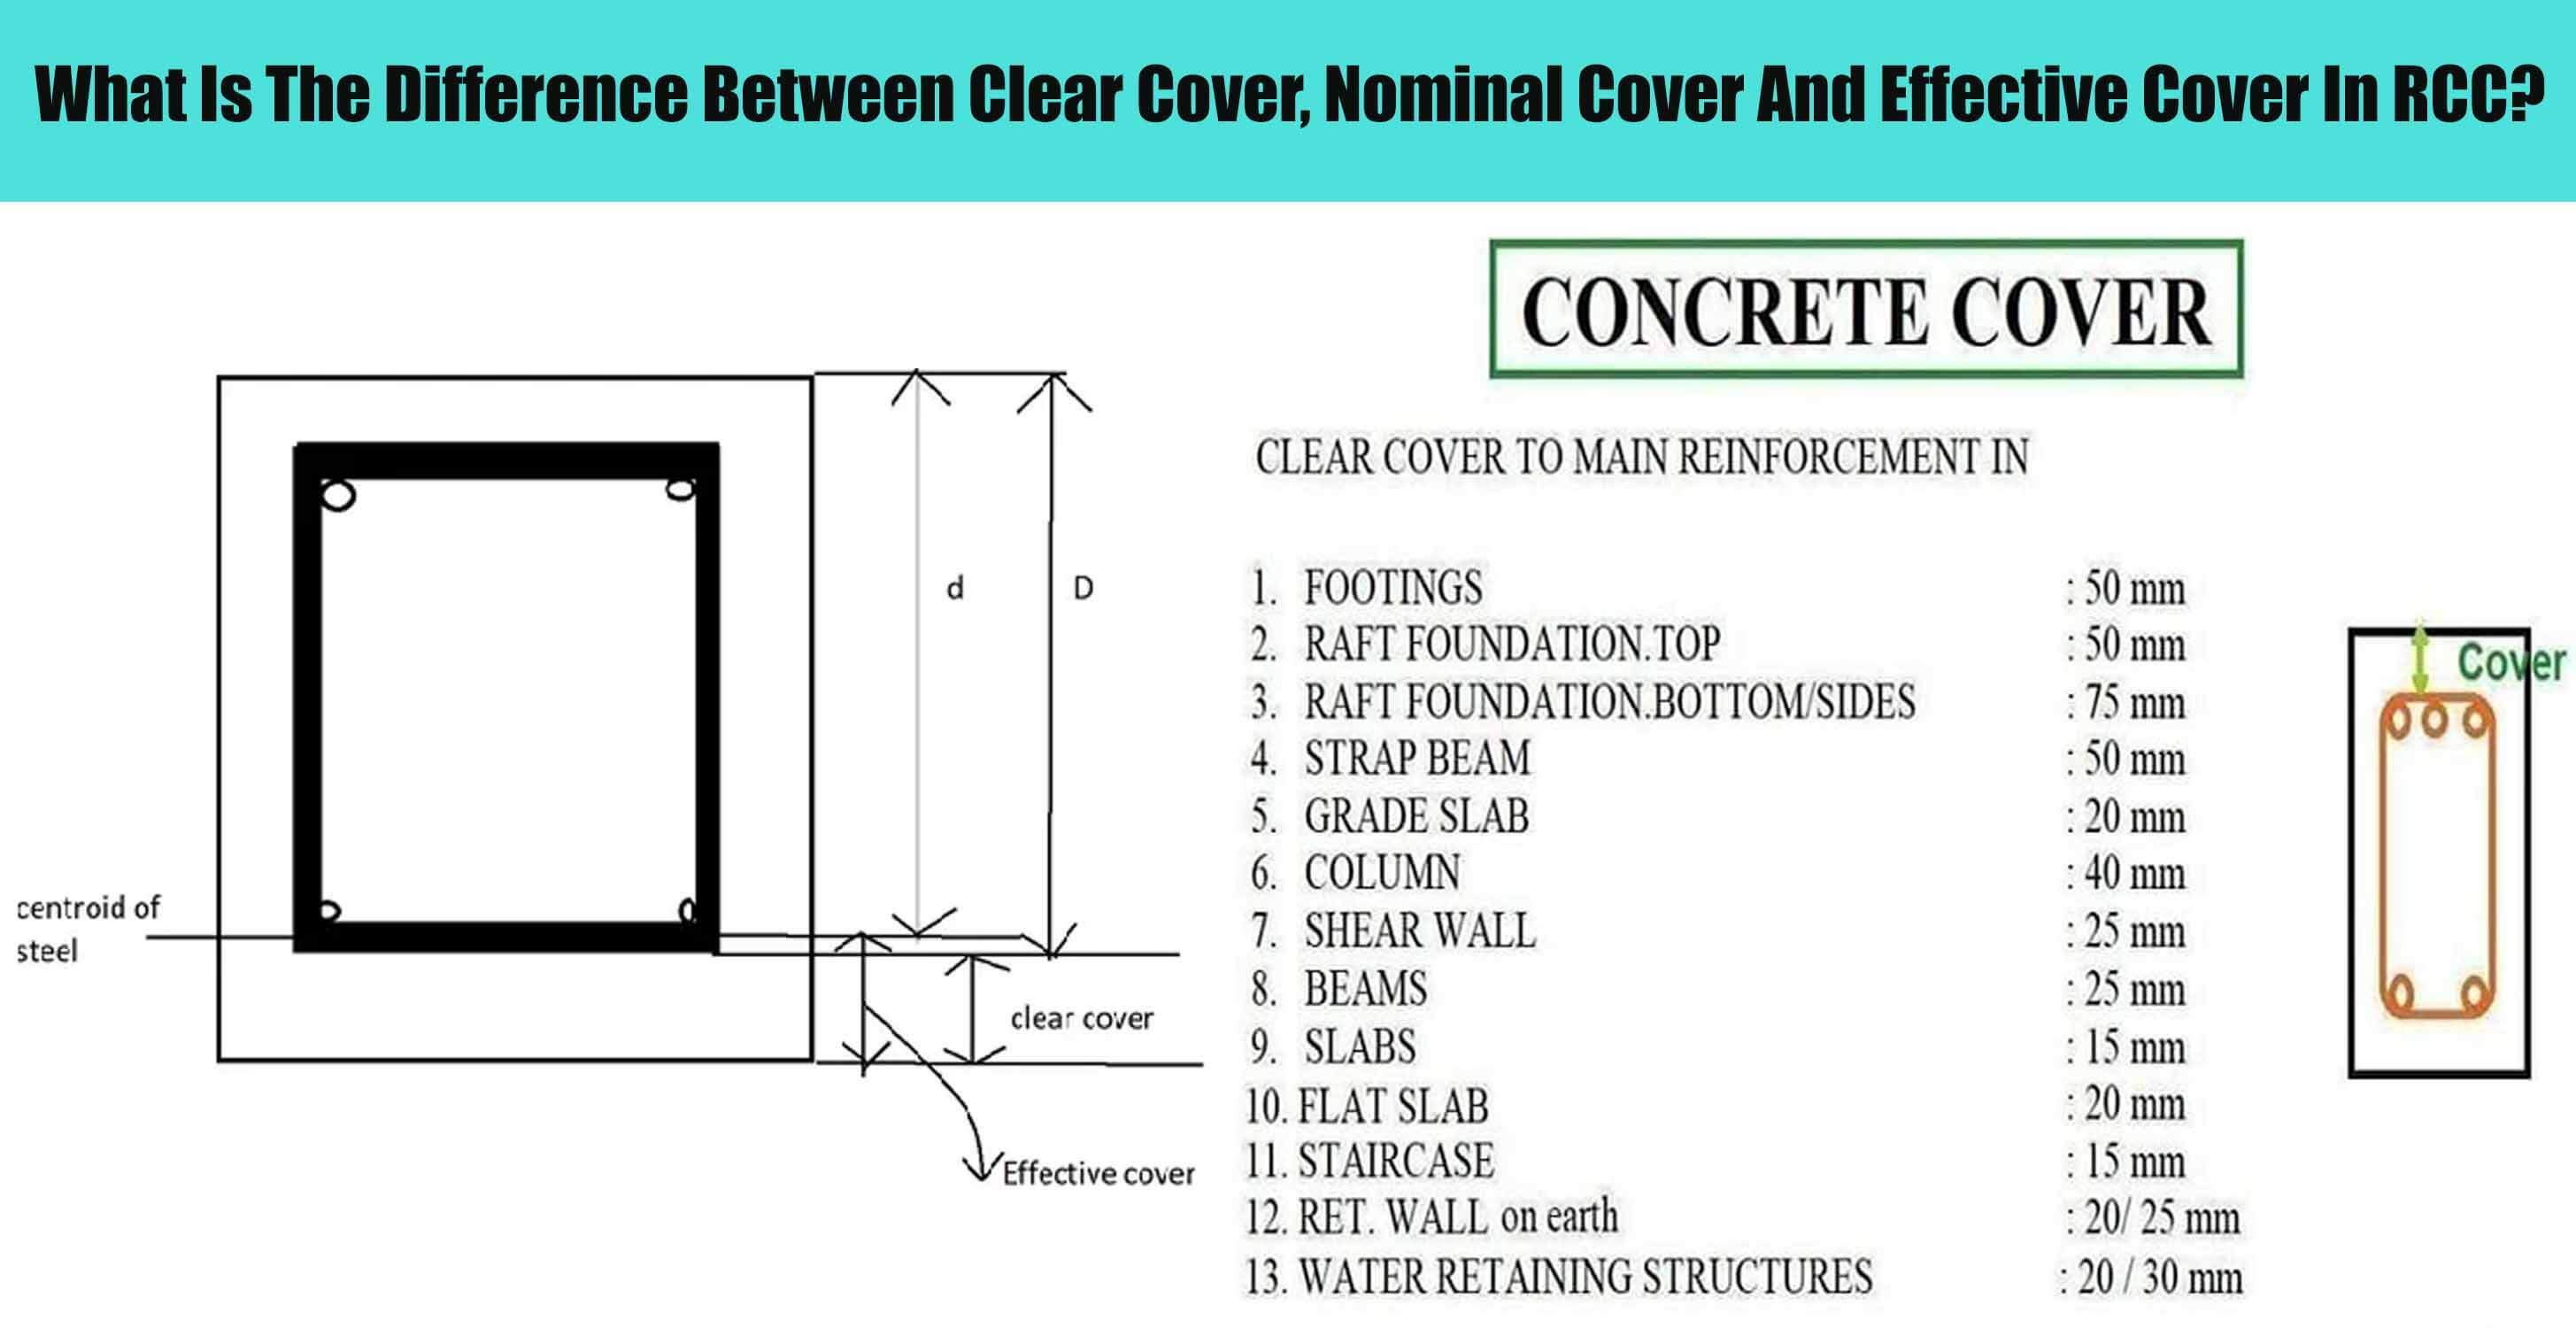 Effective Cover For Beam Column Slab In 2020 Concrete Cover Beams Cover